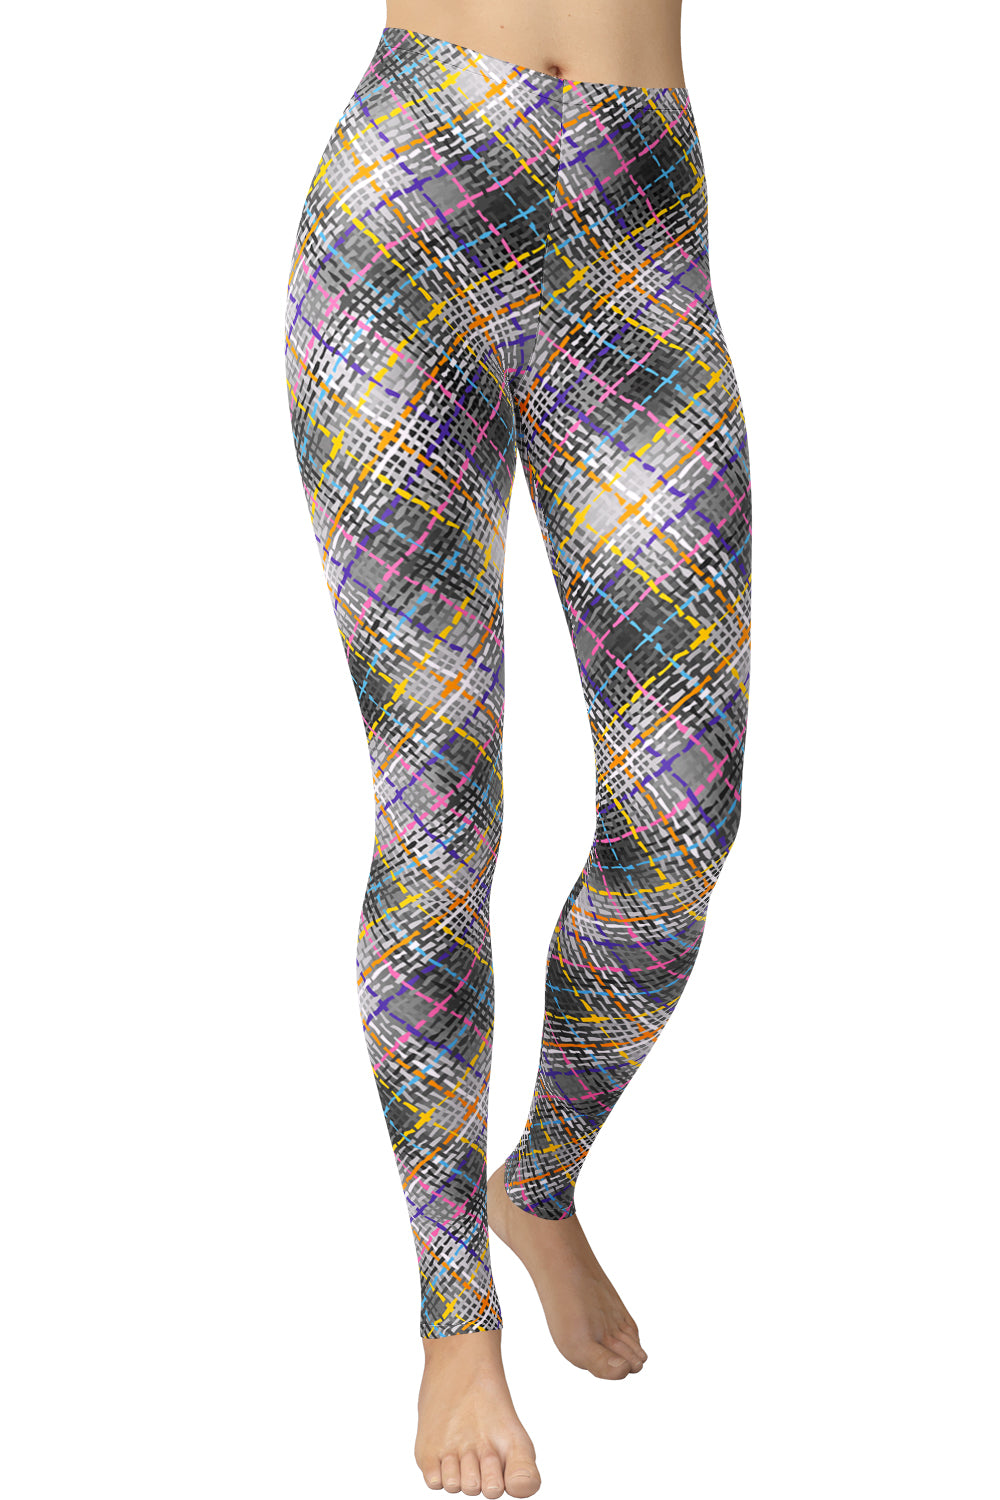 Printed Brushed Leggings - Dotted Lines Houndstooth (Digital Print)